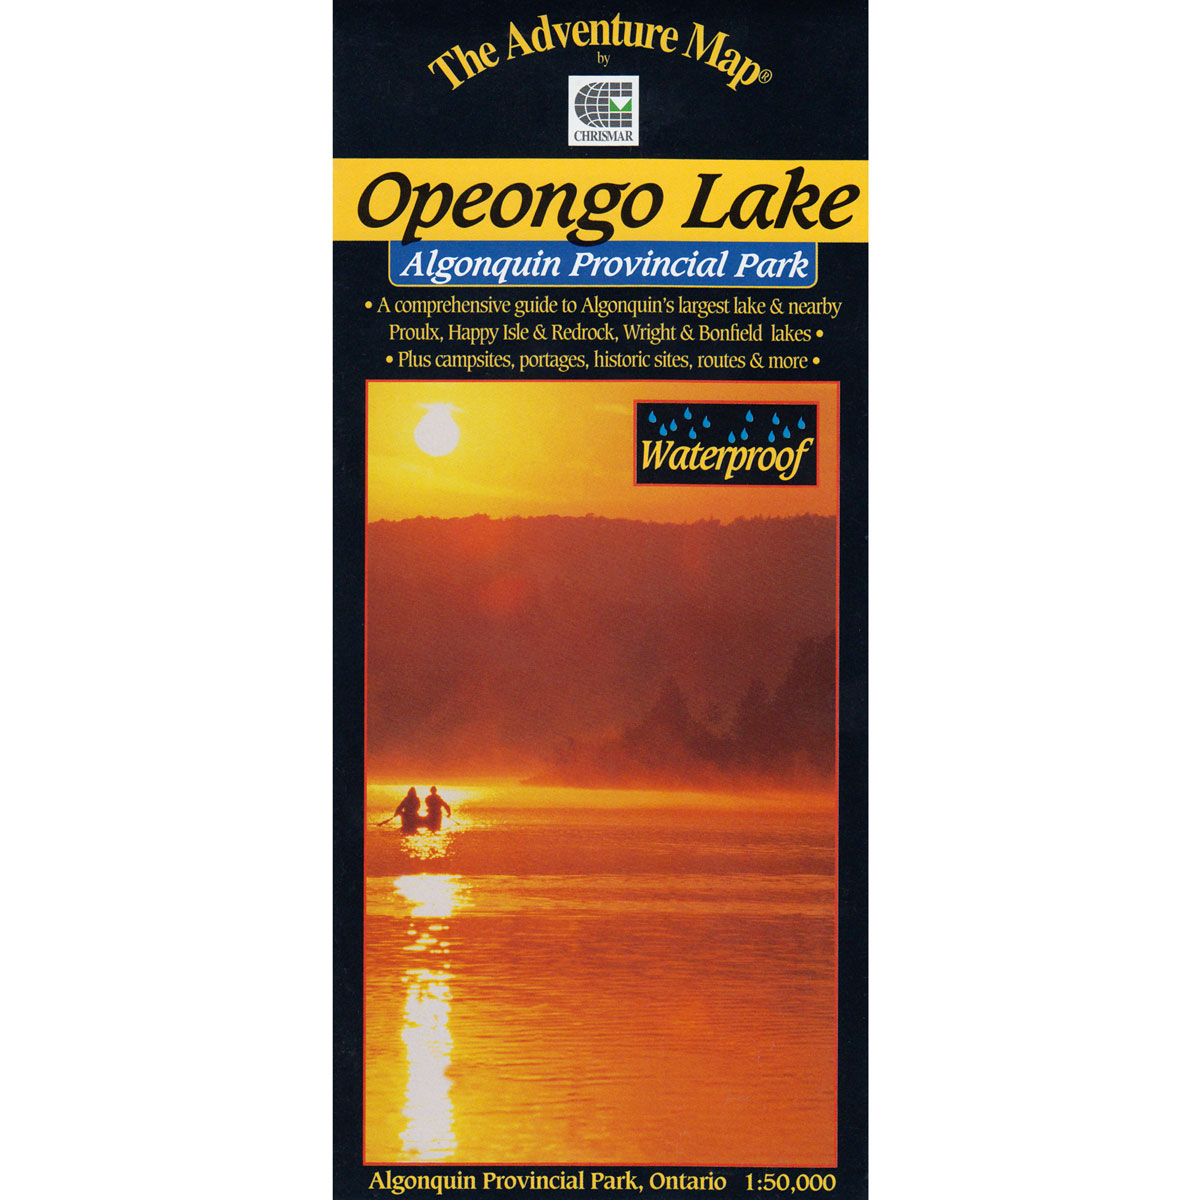 Chrismar Maps Lake Opeongo